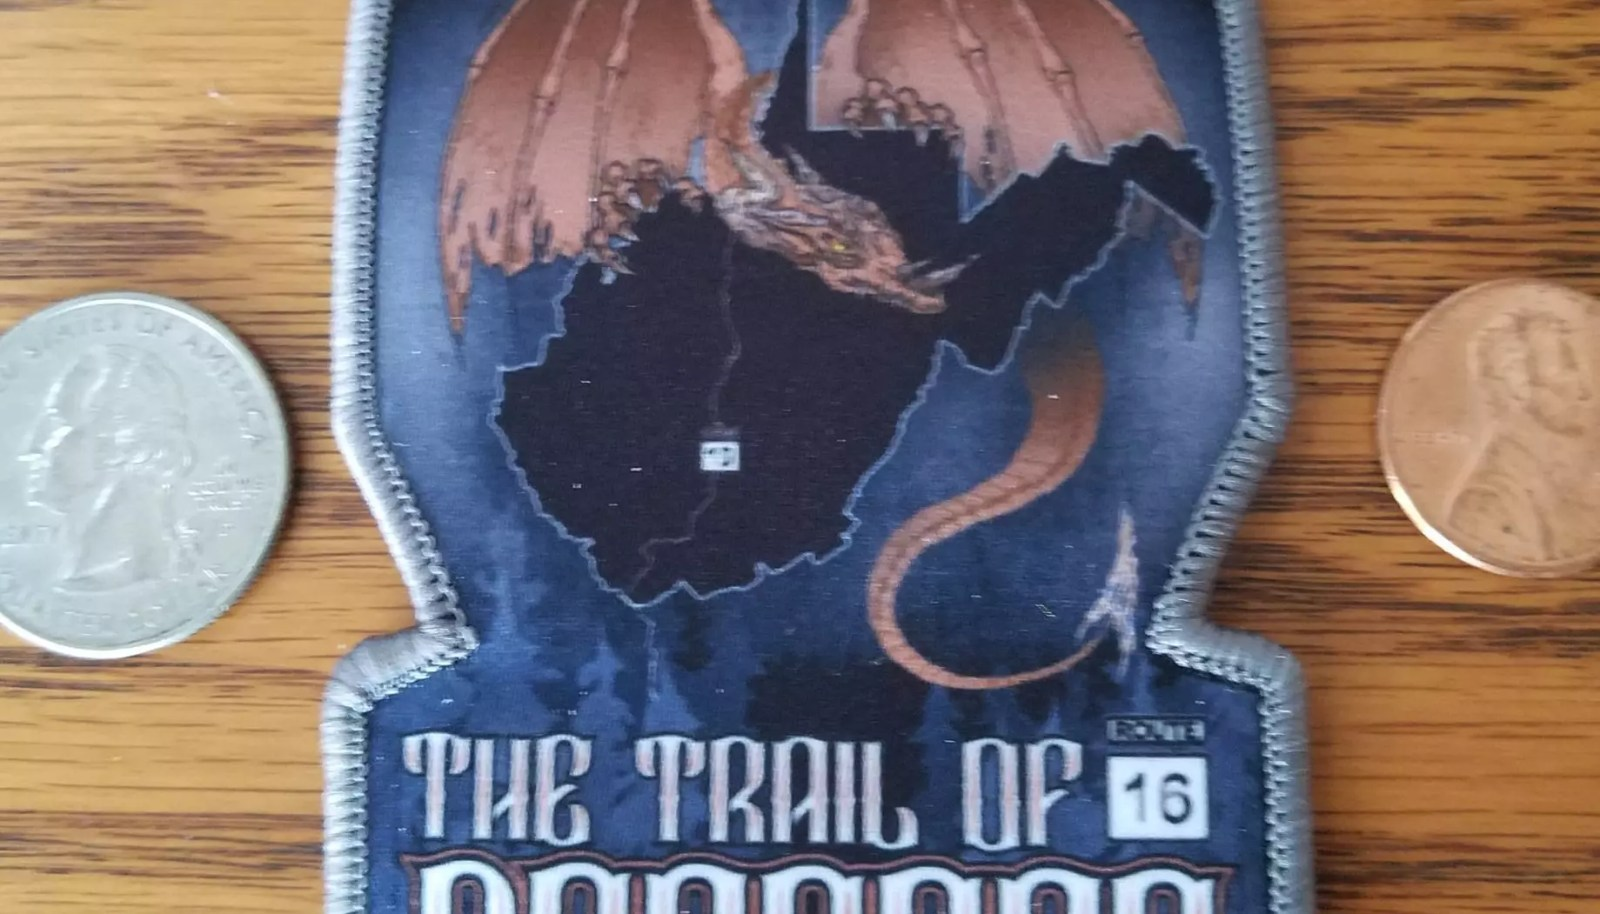 TRAIL OF DRAGONS IRON-ON PATCH